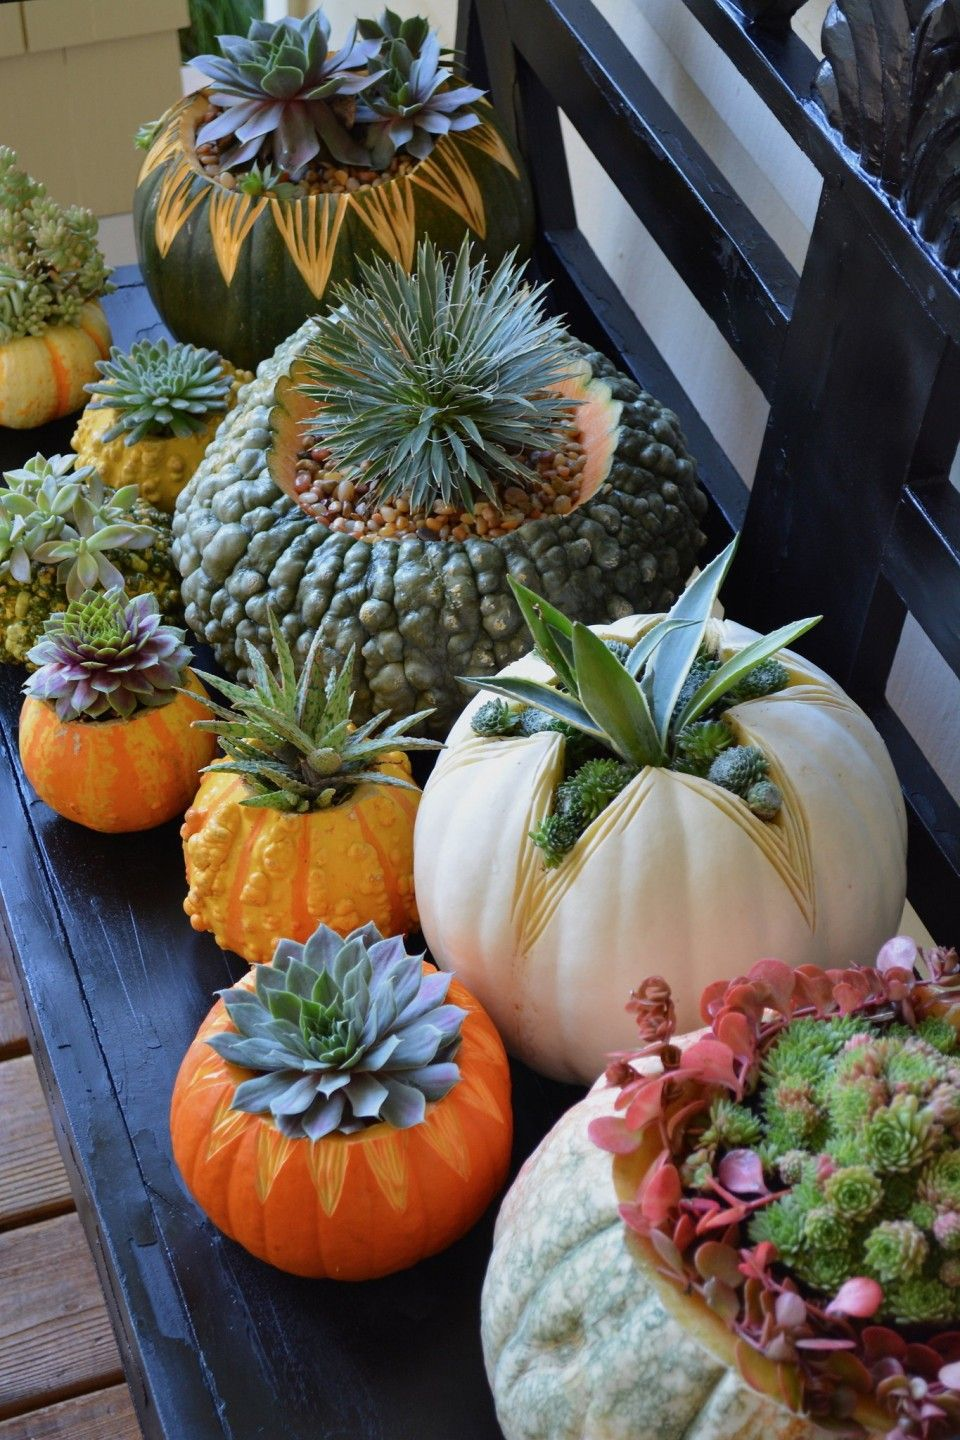 Best Pumpkin Decorating With Succulent, pumpkins vase, orange place mats, natural table decor, flower arrangements, Thanksgiving Decor Ideas